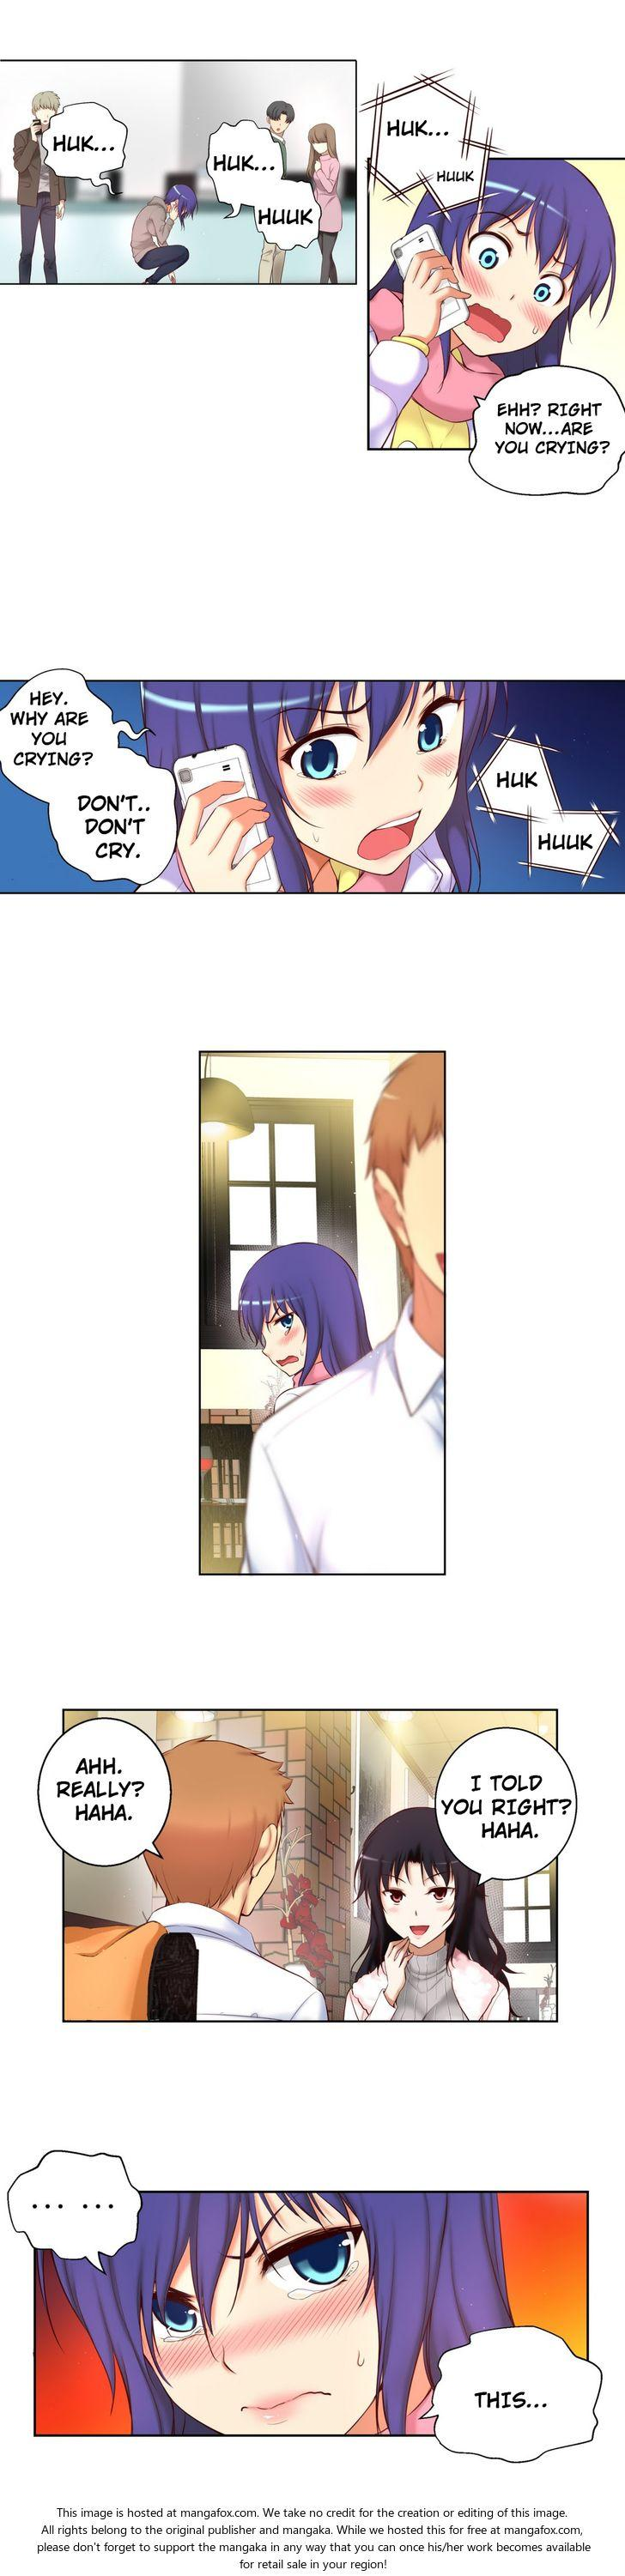 [Donggul Gom] She is Young (English) Part 1/2 733